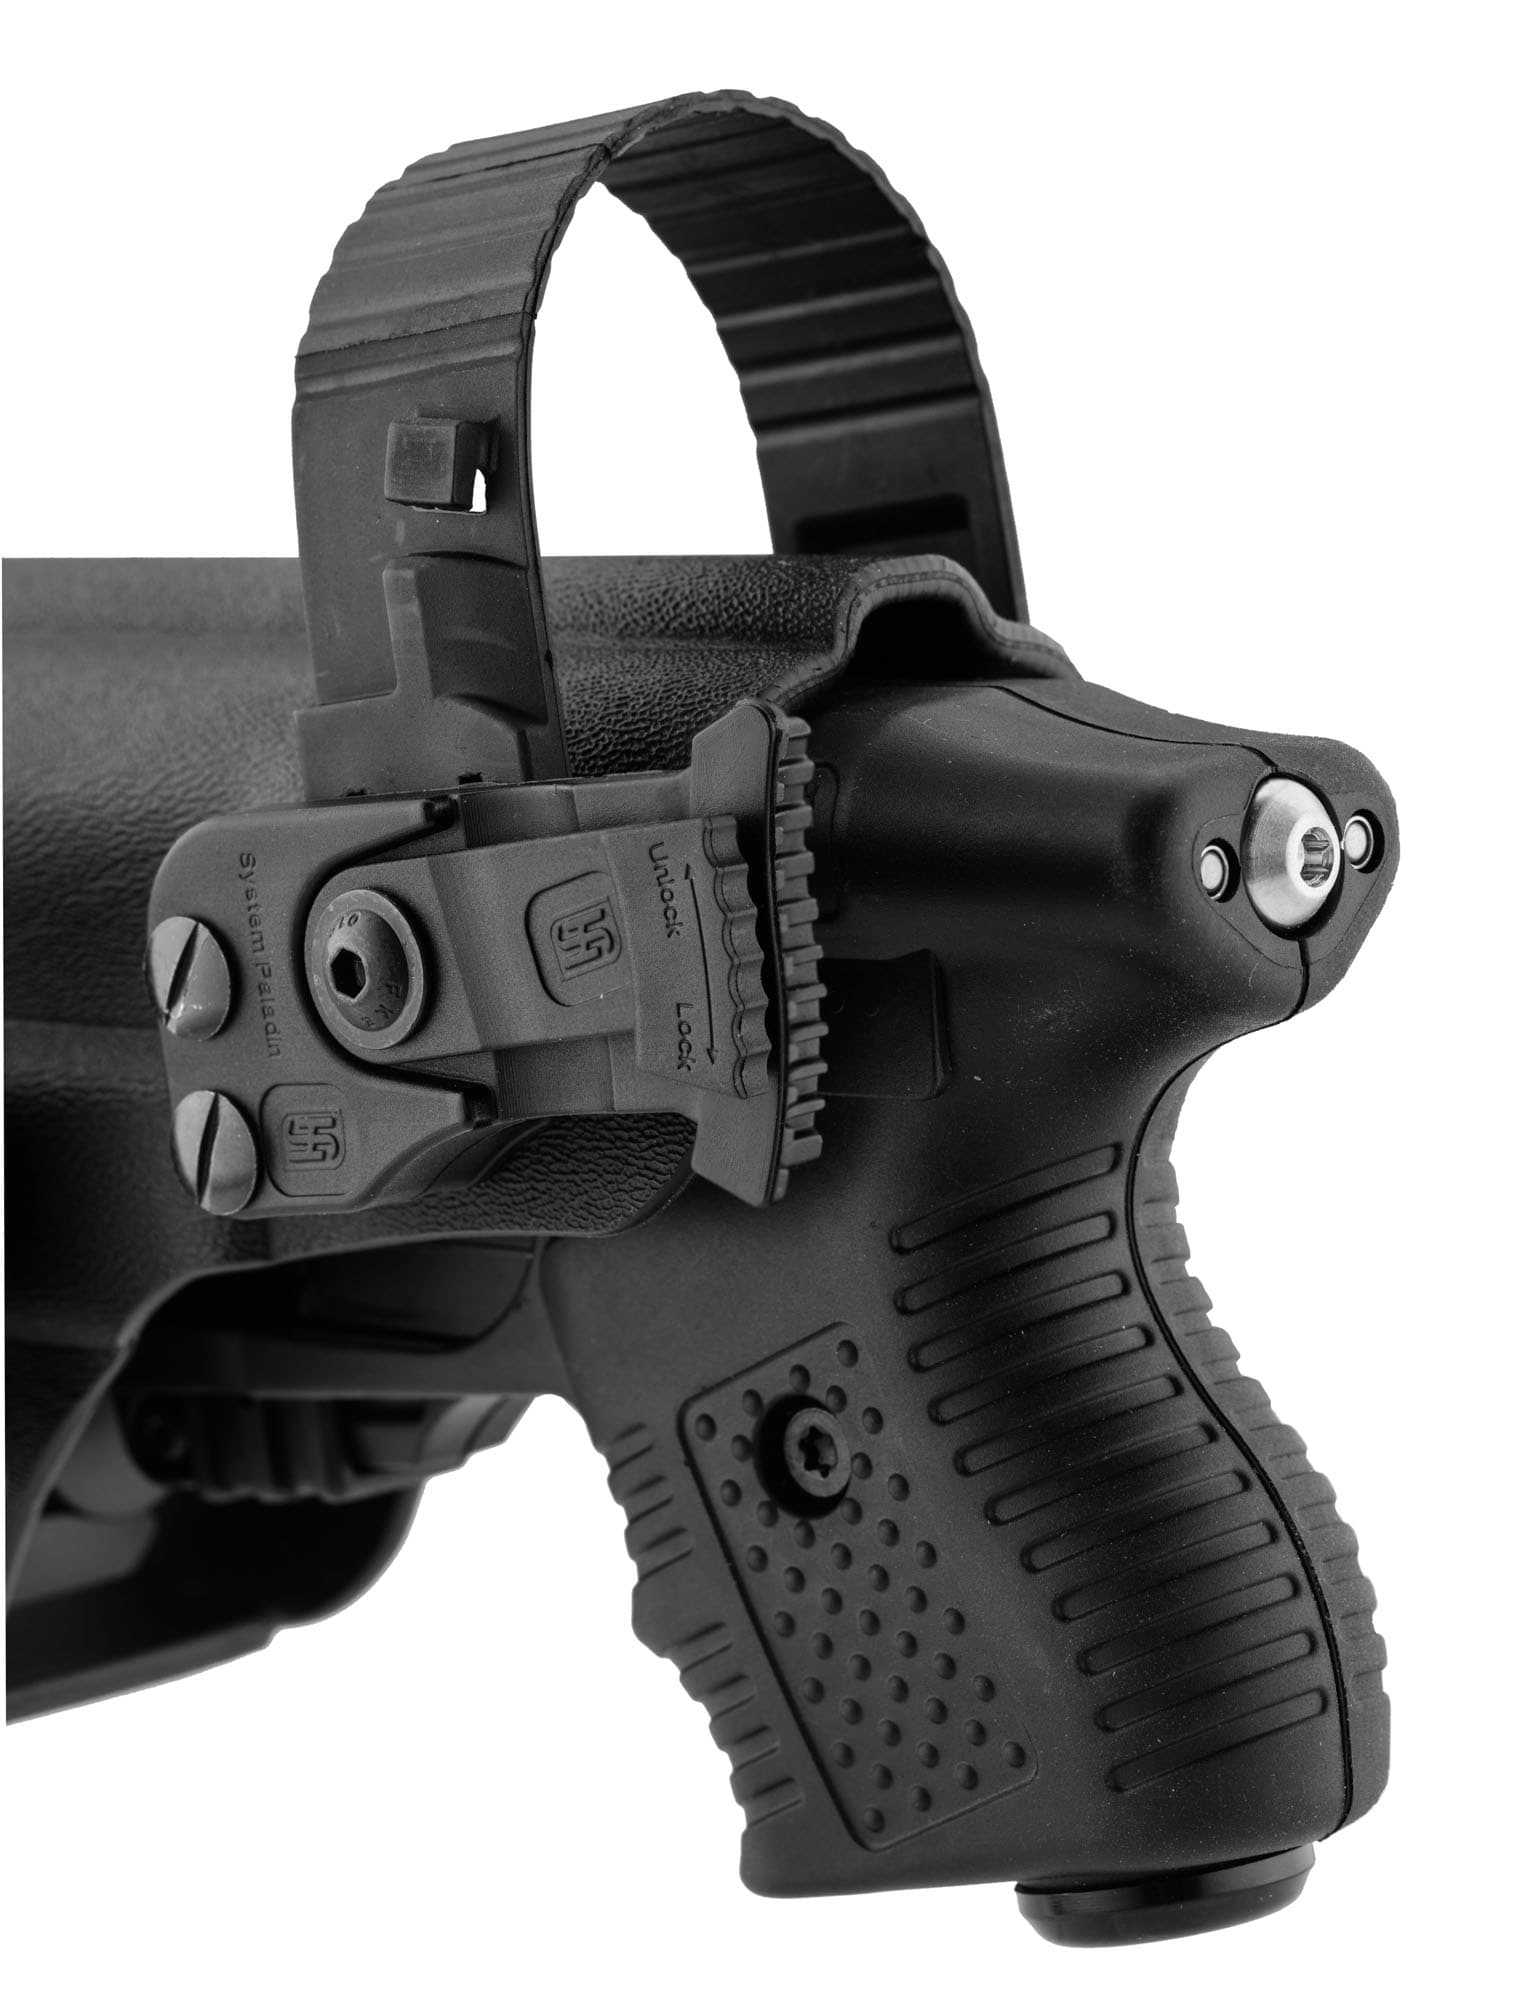 JPX390-7-Holster pour JPX - Kydex Paladin II avec lampe tactique - JPX390